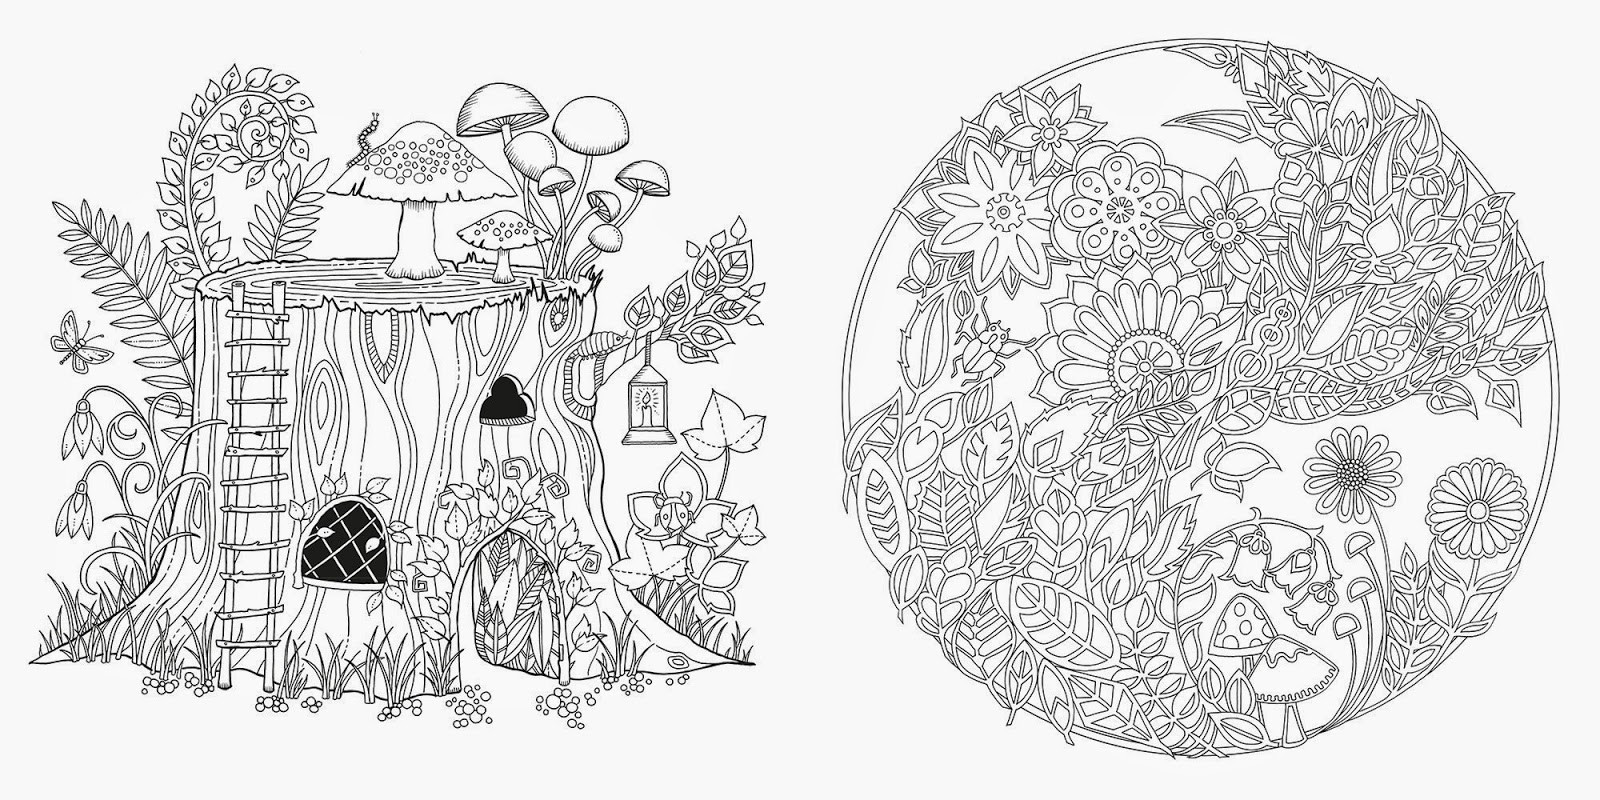 Best ideas about Enchanted Forest Coloring Sheets For Kids . Save or Pin Heidi Anne Heiner s Blog Art Thursday Enchanted Forest Now.